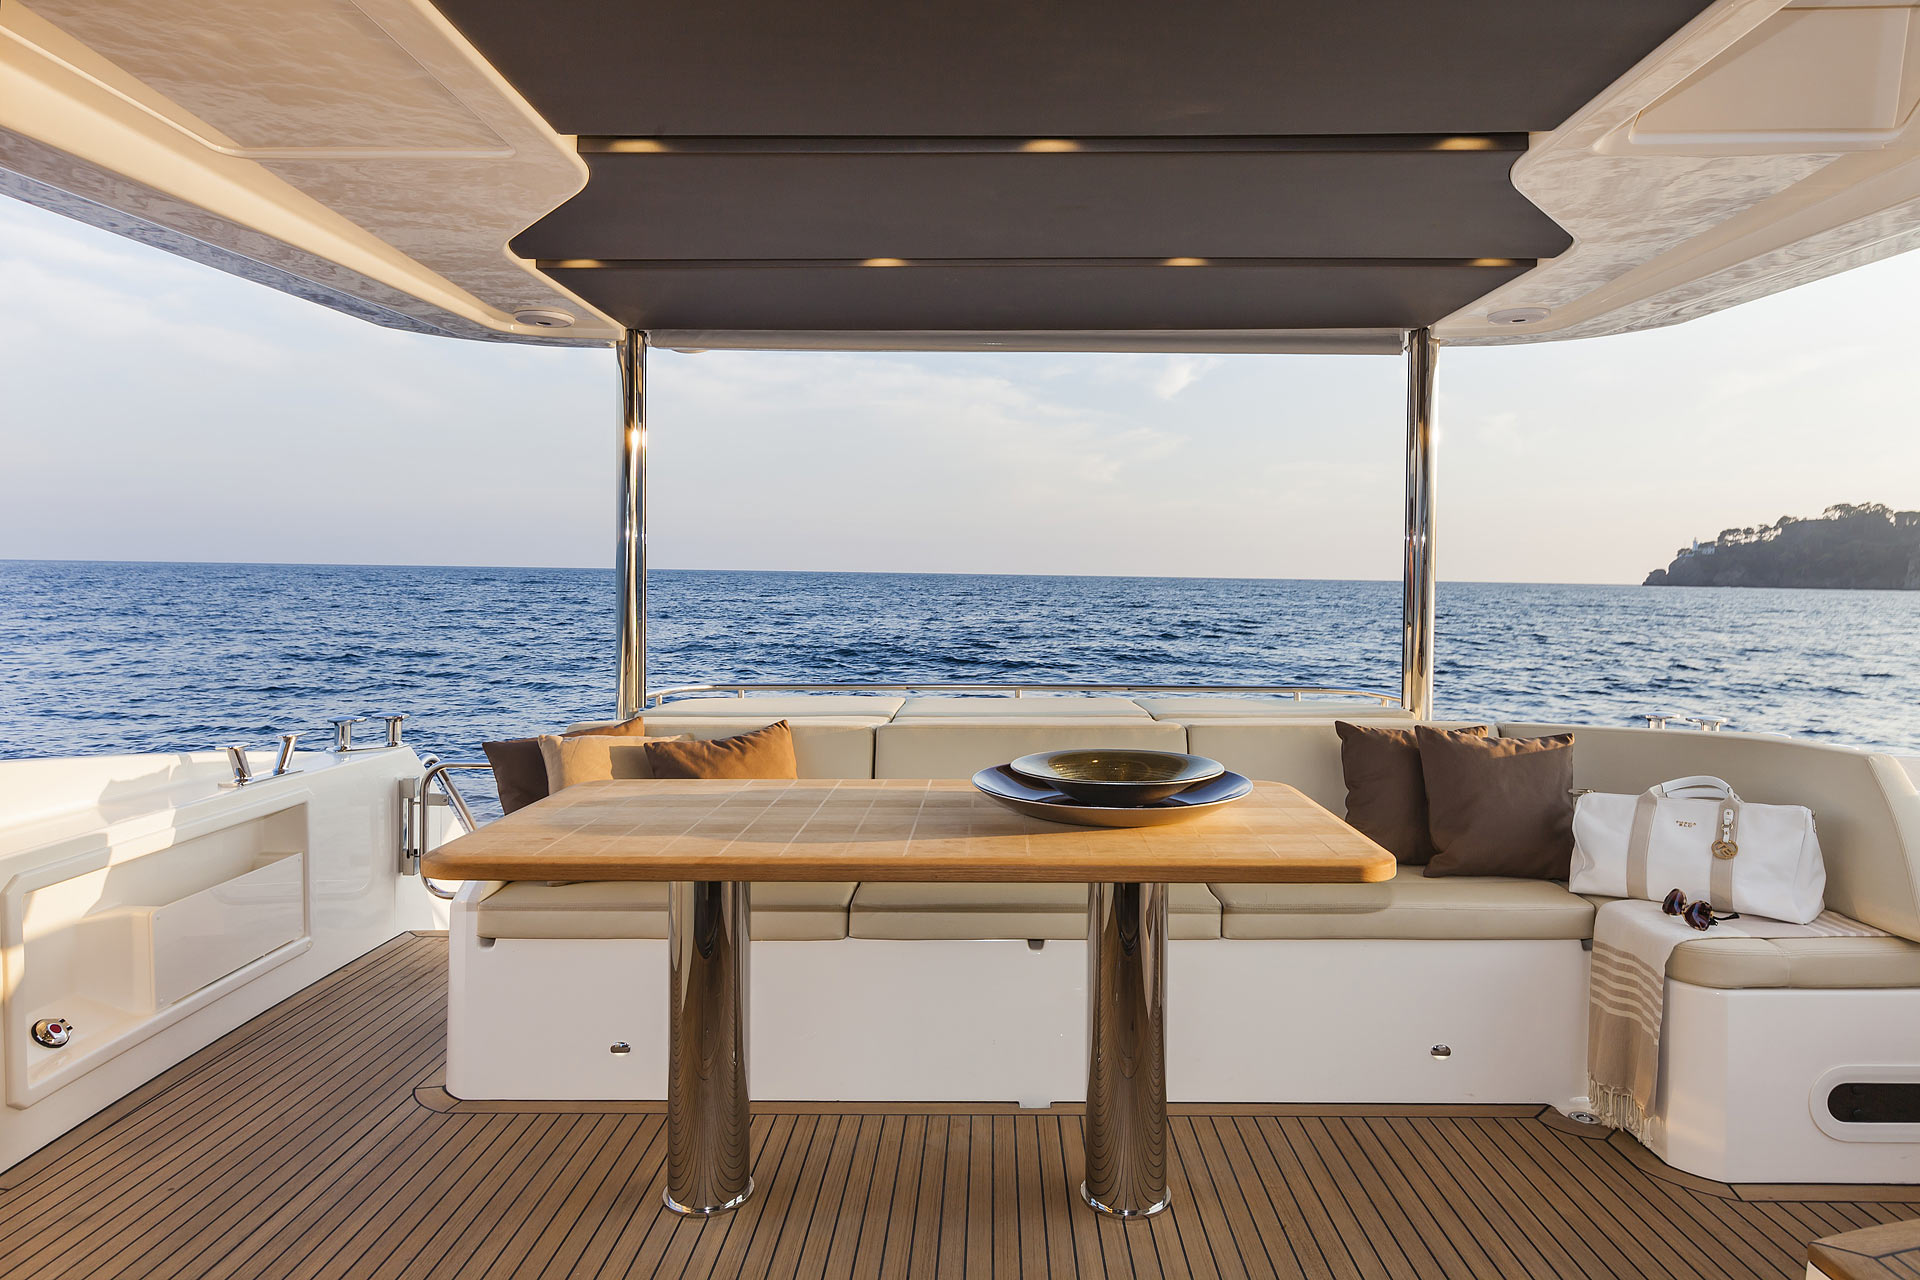 Absolute 60 Fly Luxury Yacht Deck